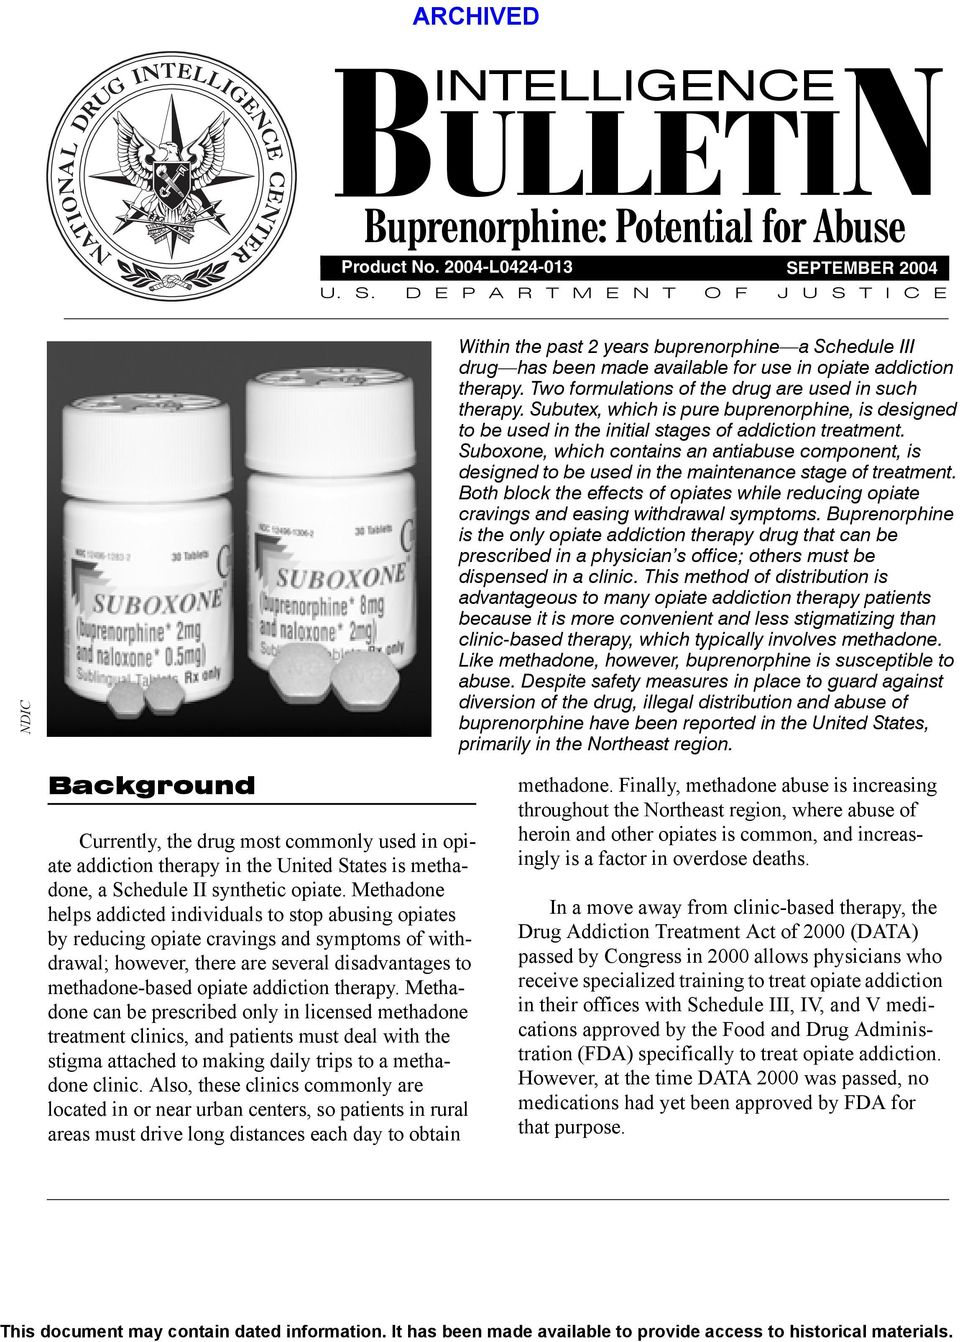 Two formulations of the drug are used in such therapy. Subutex, which is pure buprenorphine, is designed to be used in the initial stages of addiction treatment.